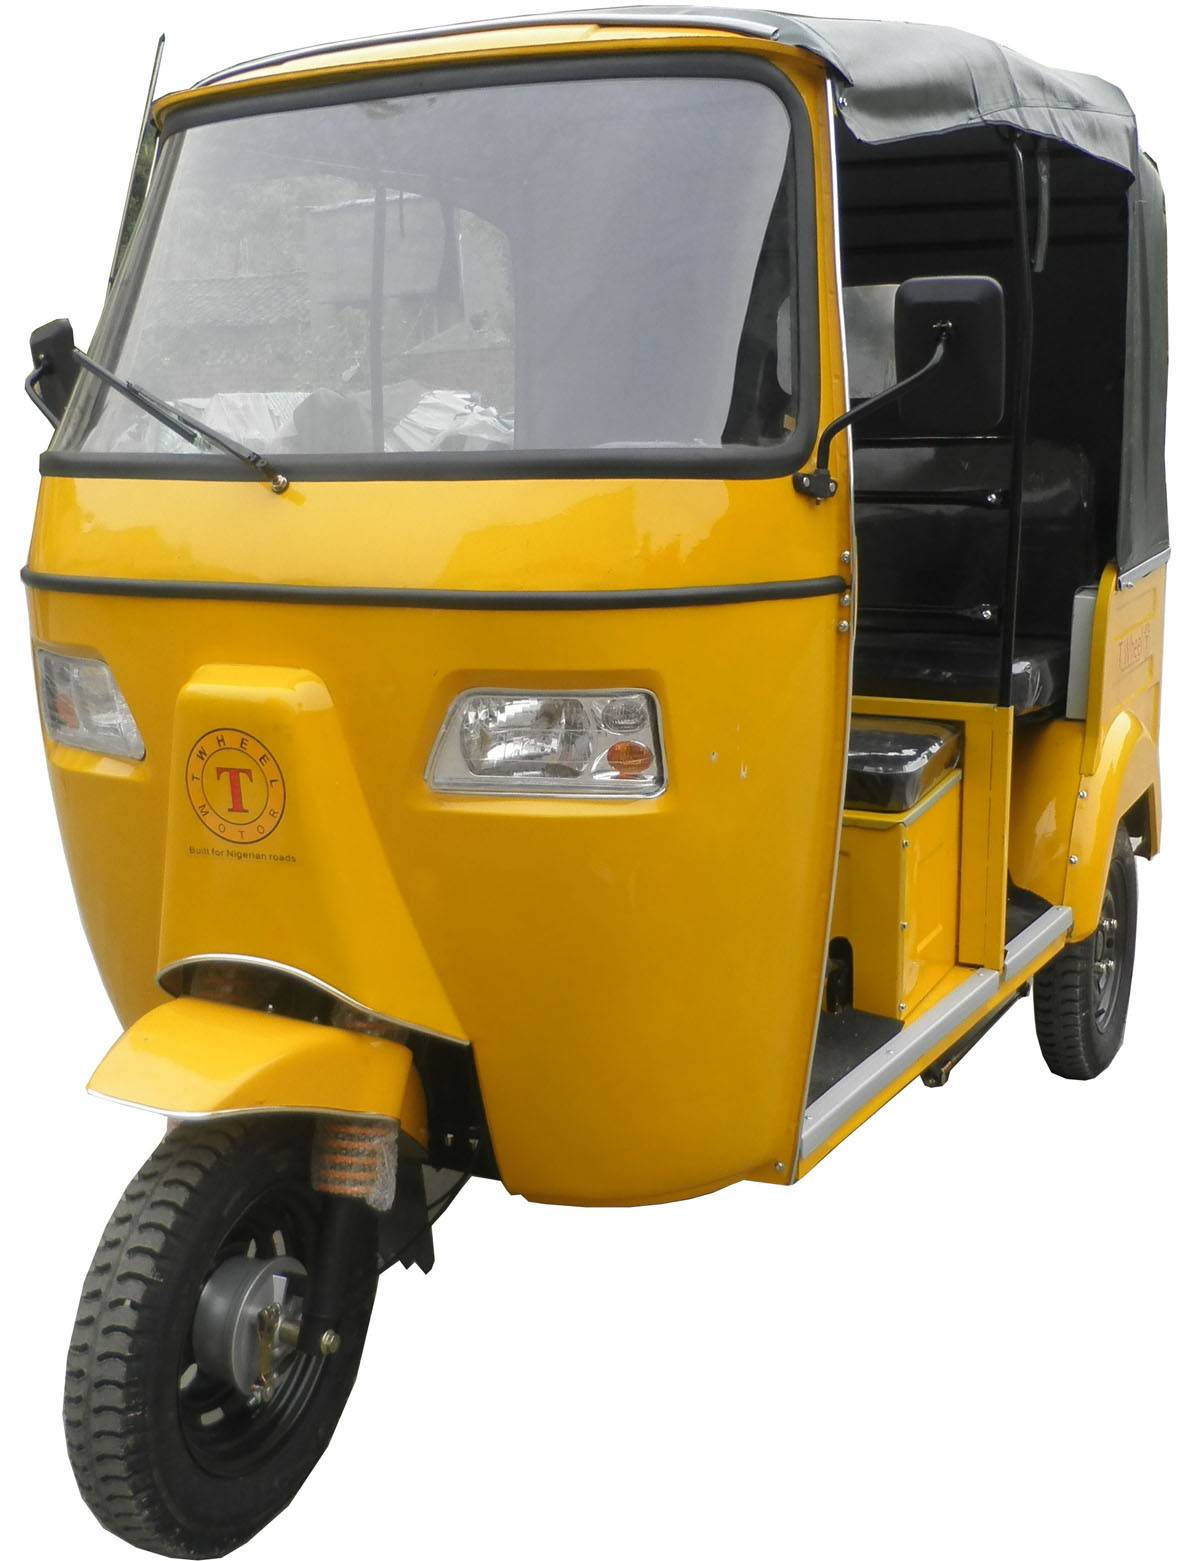 Bajaj Tricycle with rear engine, Moto taxi, Taxi Tricycle